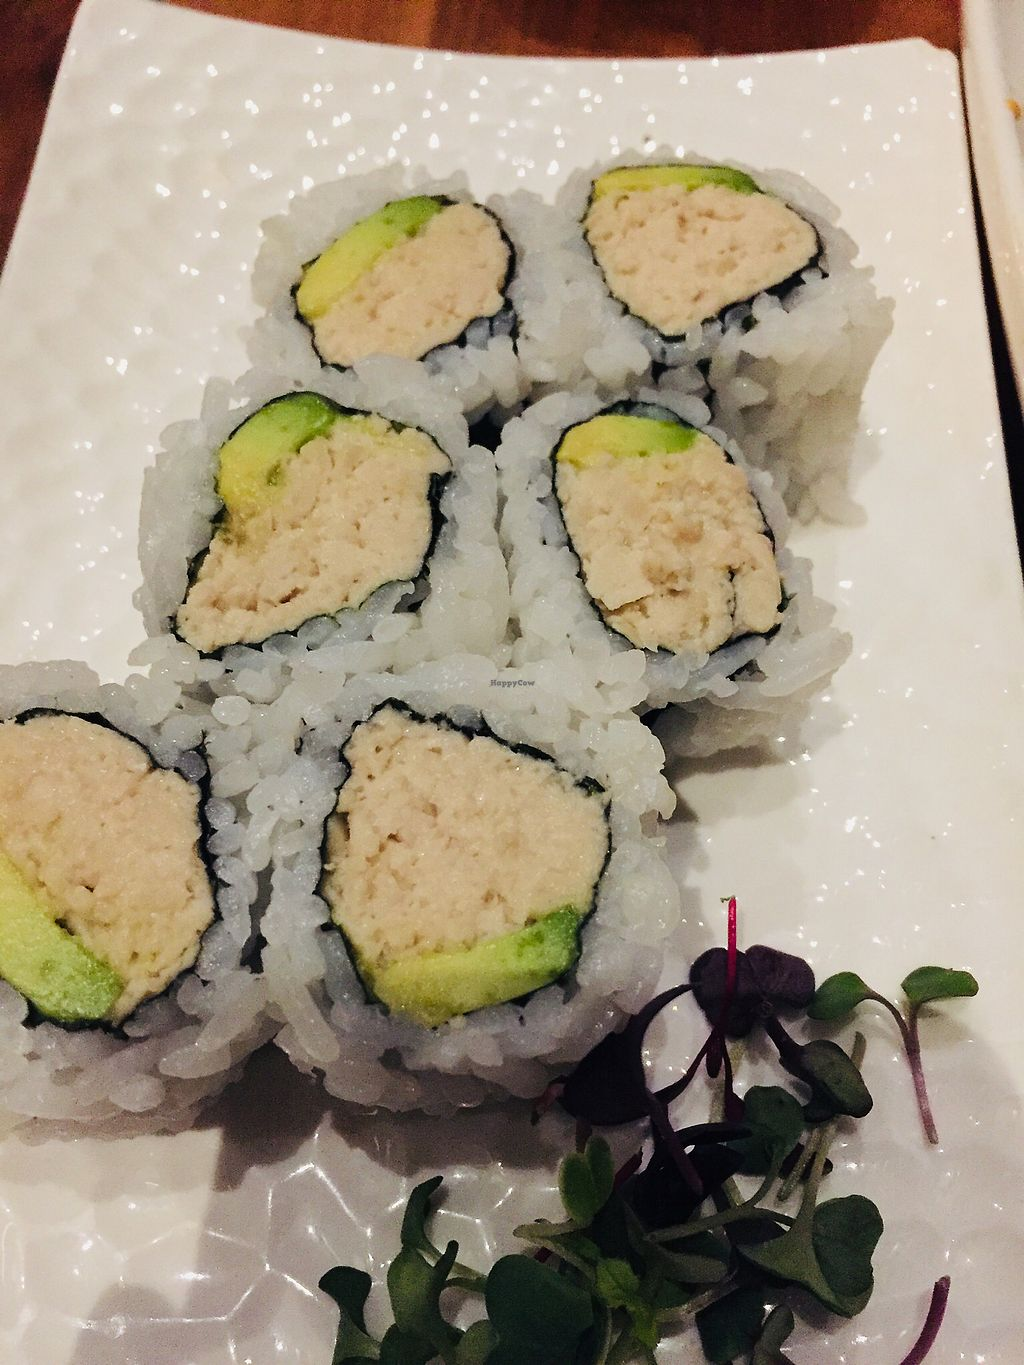 """Photo of Shizen Vegan Sushi Bar  by <a href=""""/members/profile/TheVeganNarwhal"""">TheVeganNarwhal</a> <br/>California roll <br/> February 12, 2018  - <a href='/contact/abuse/image/54689/358227'>Report</a>"""